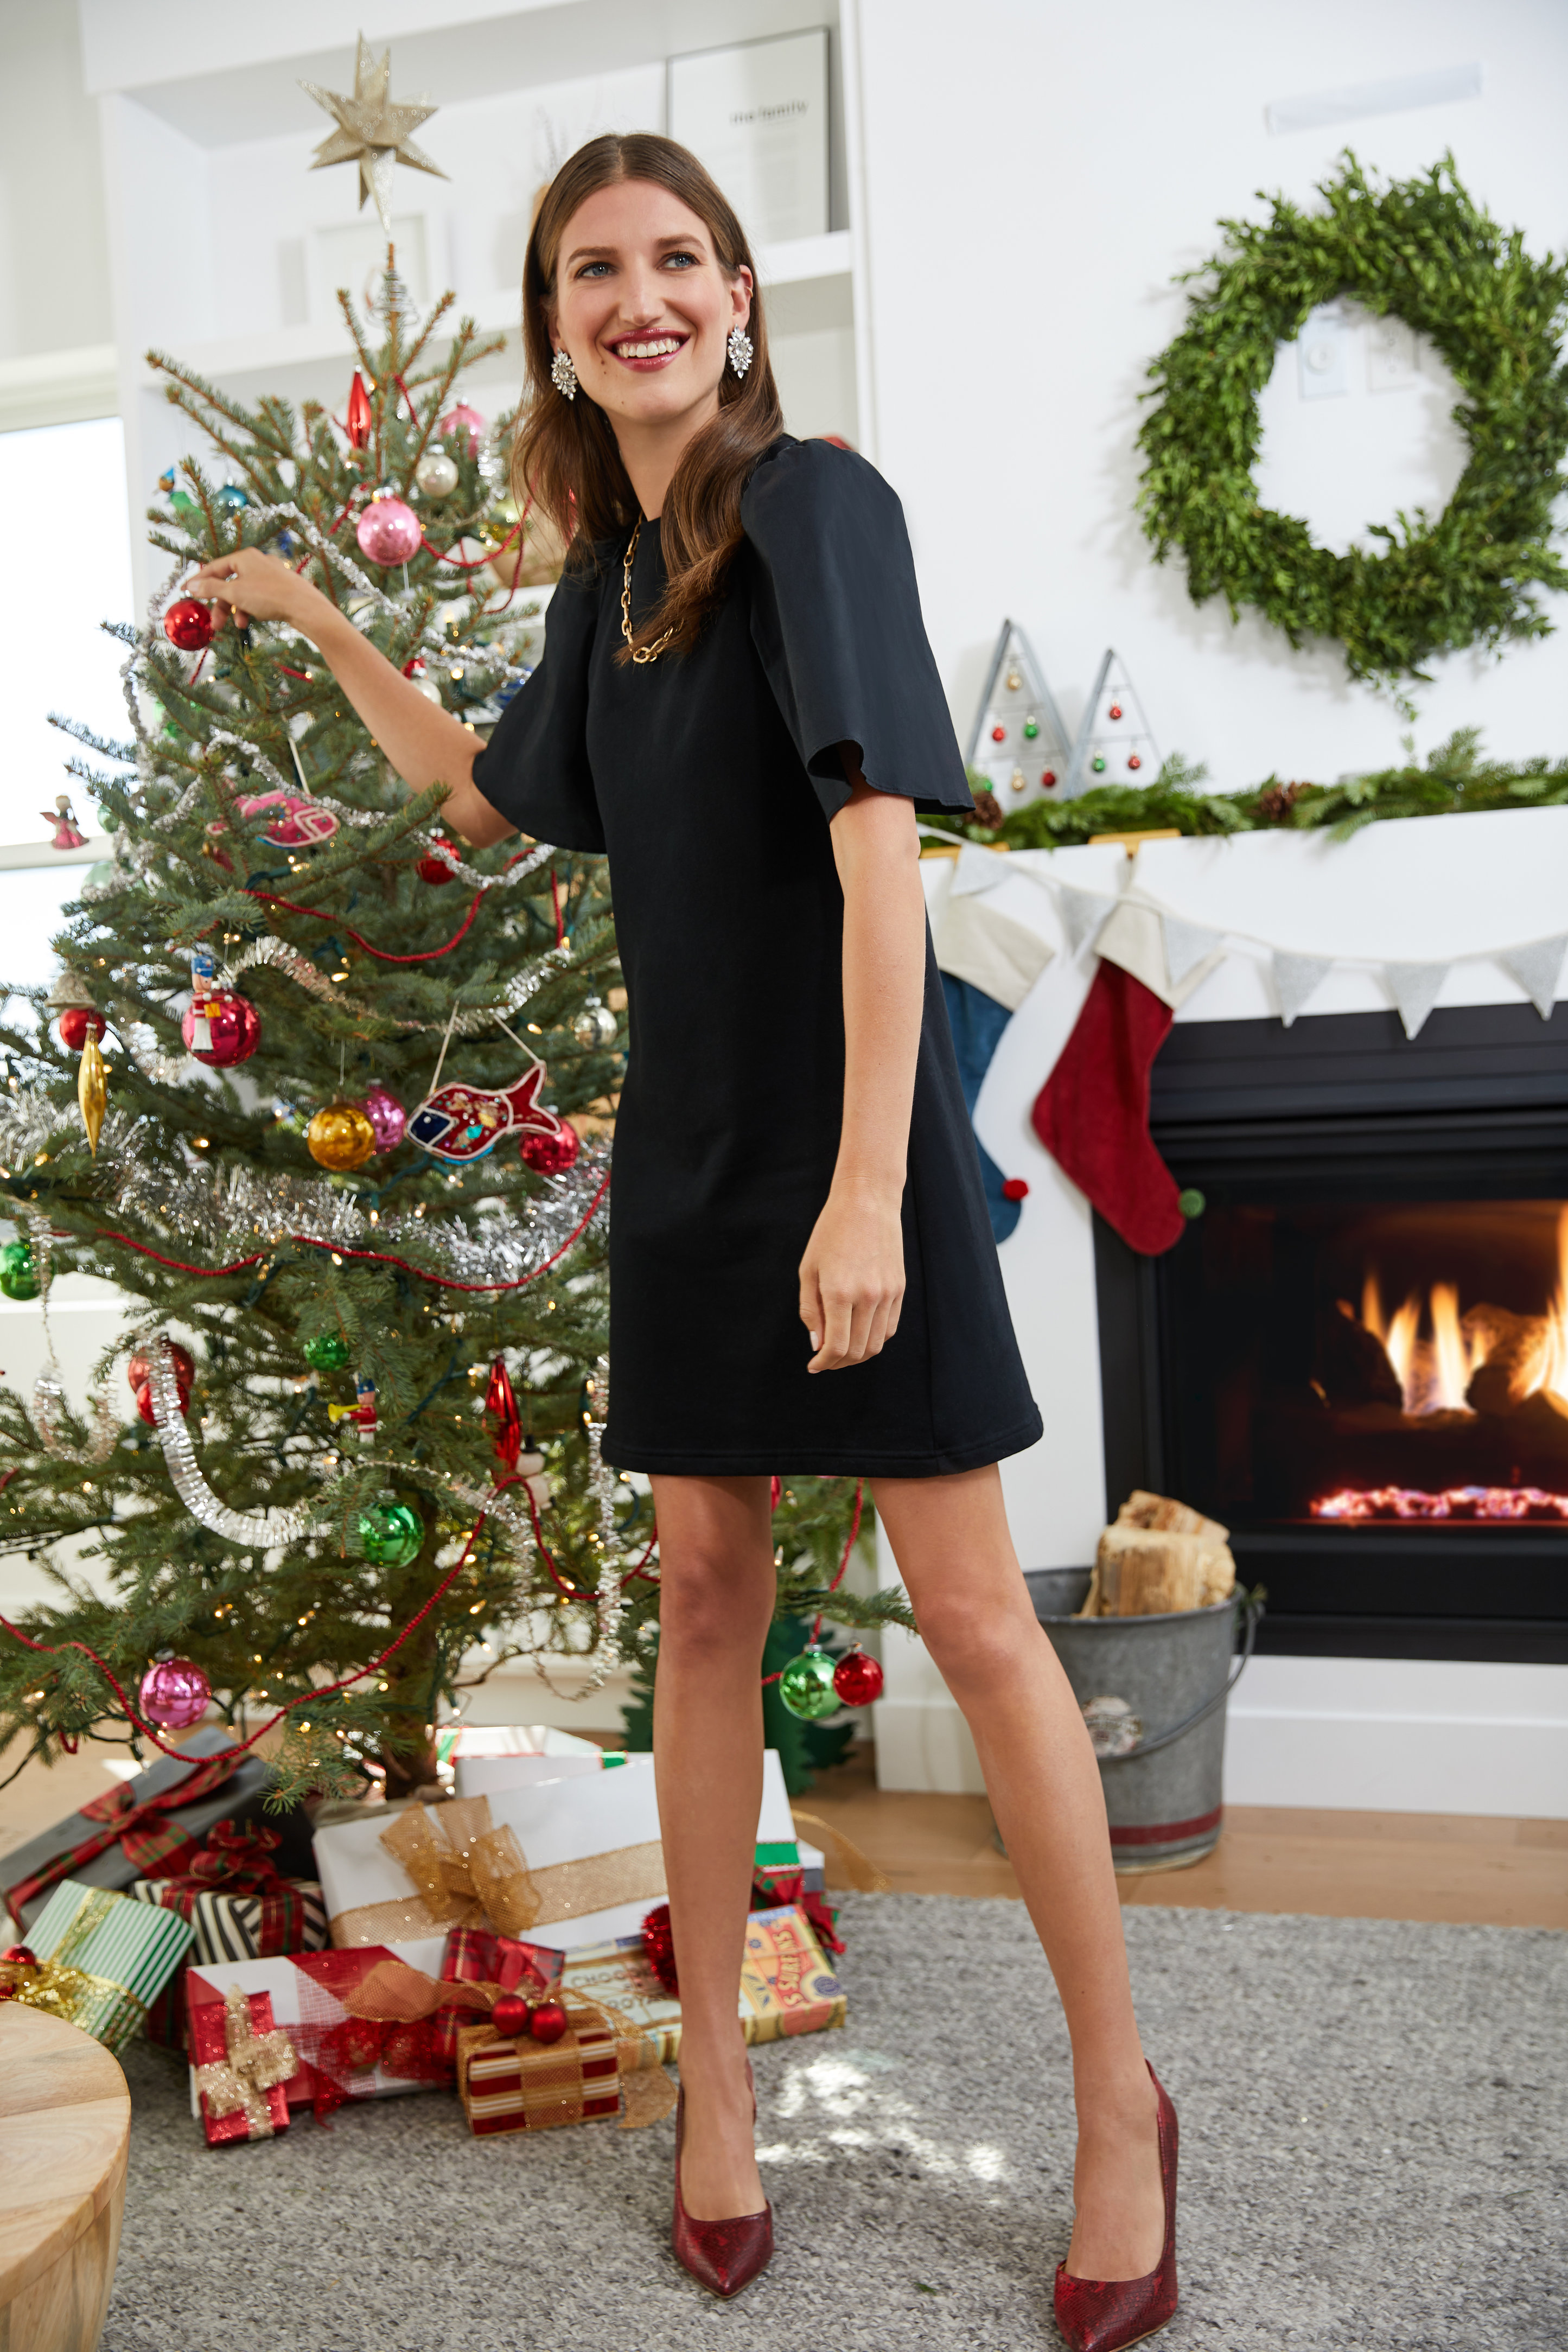 Woman In Black Dress Next To Christmas Tree